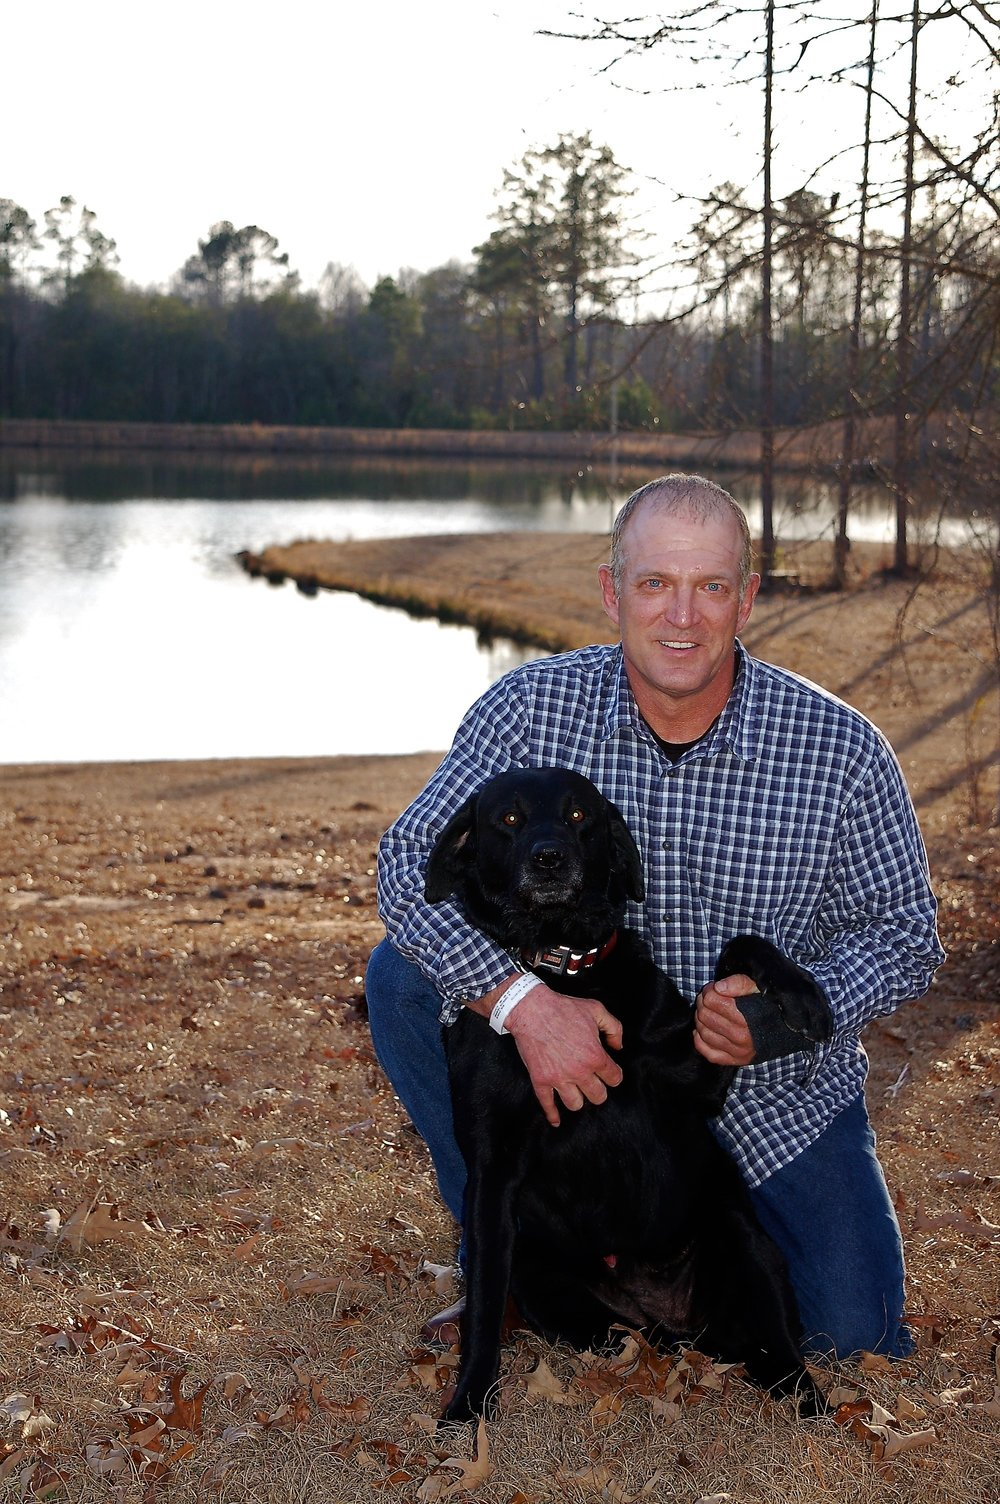 Meet our Program Director - Mike Emmanuel is a Birmingham native, and has extensive experience working in the field of addiction recovery, including helping start The Foundry Farm in Cullman. He has already helped Restoration Springs become an active participant in the Fayette community! We can't think of a better person to be here!